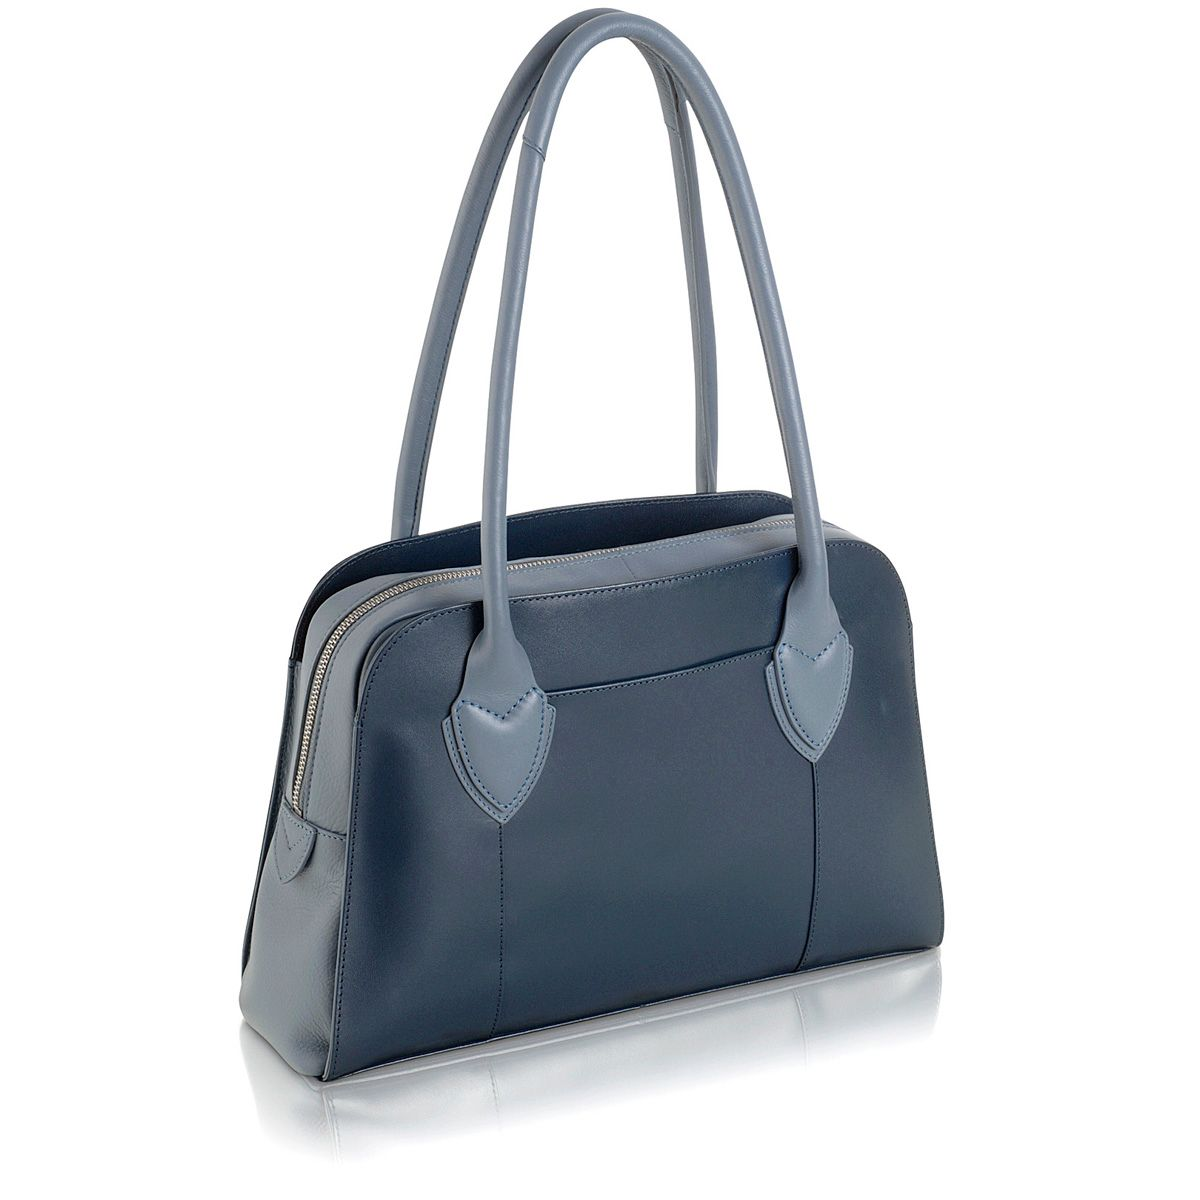 Aldgate plain navy leather ziptop tote medium bag